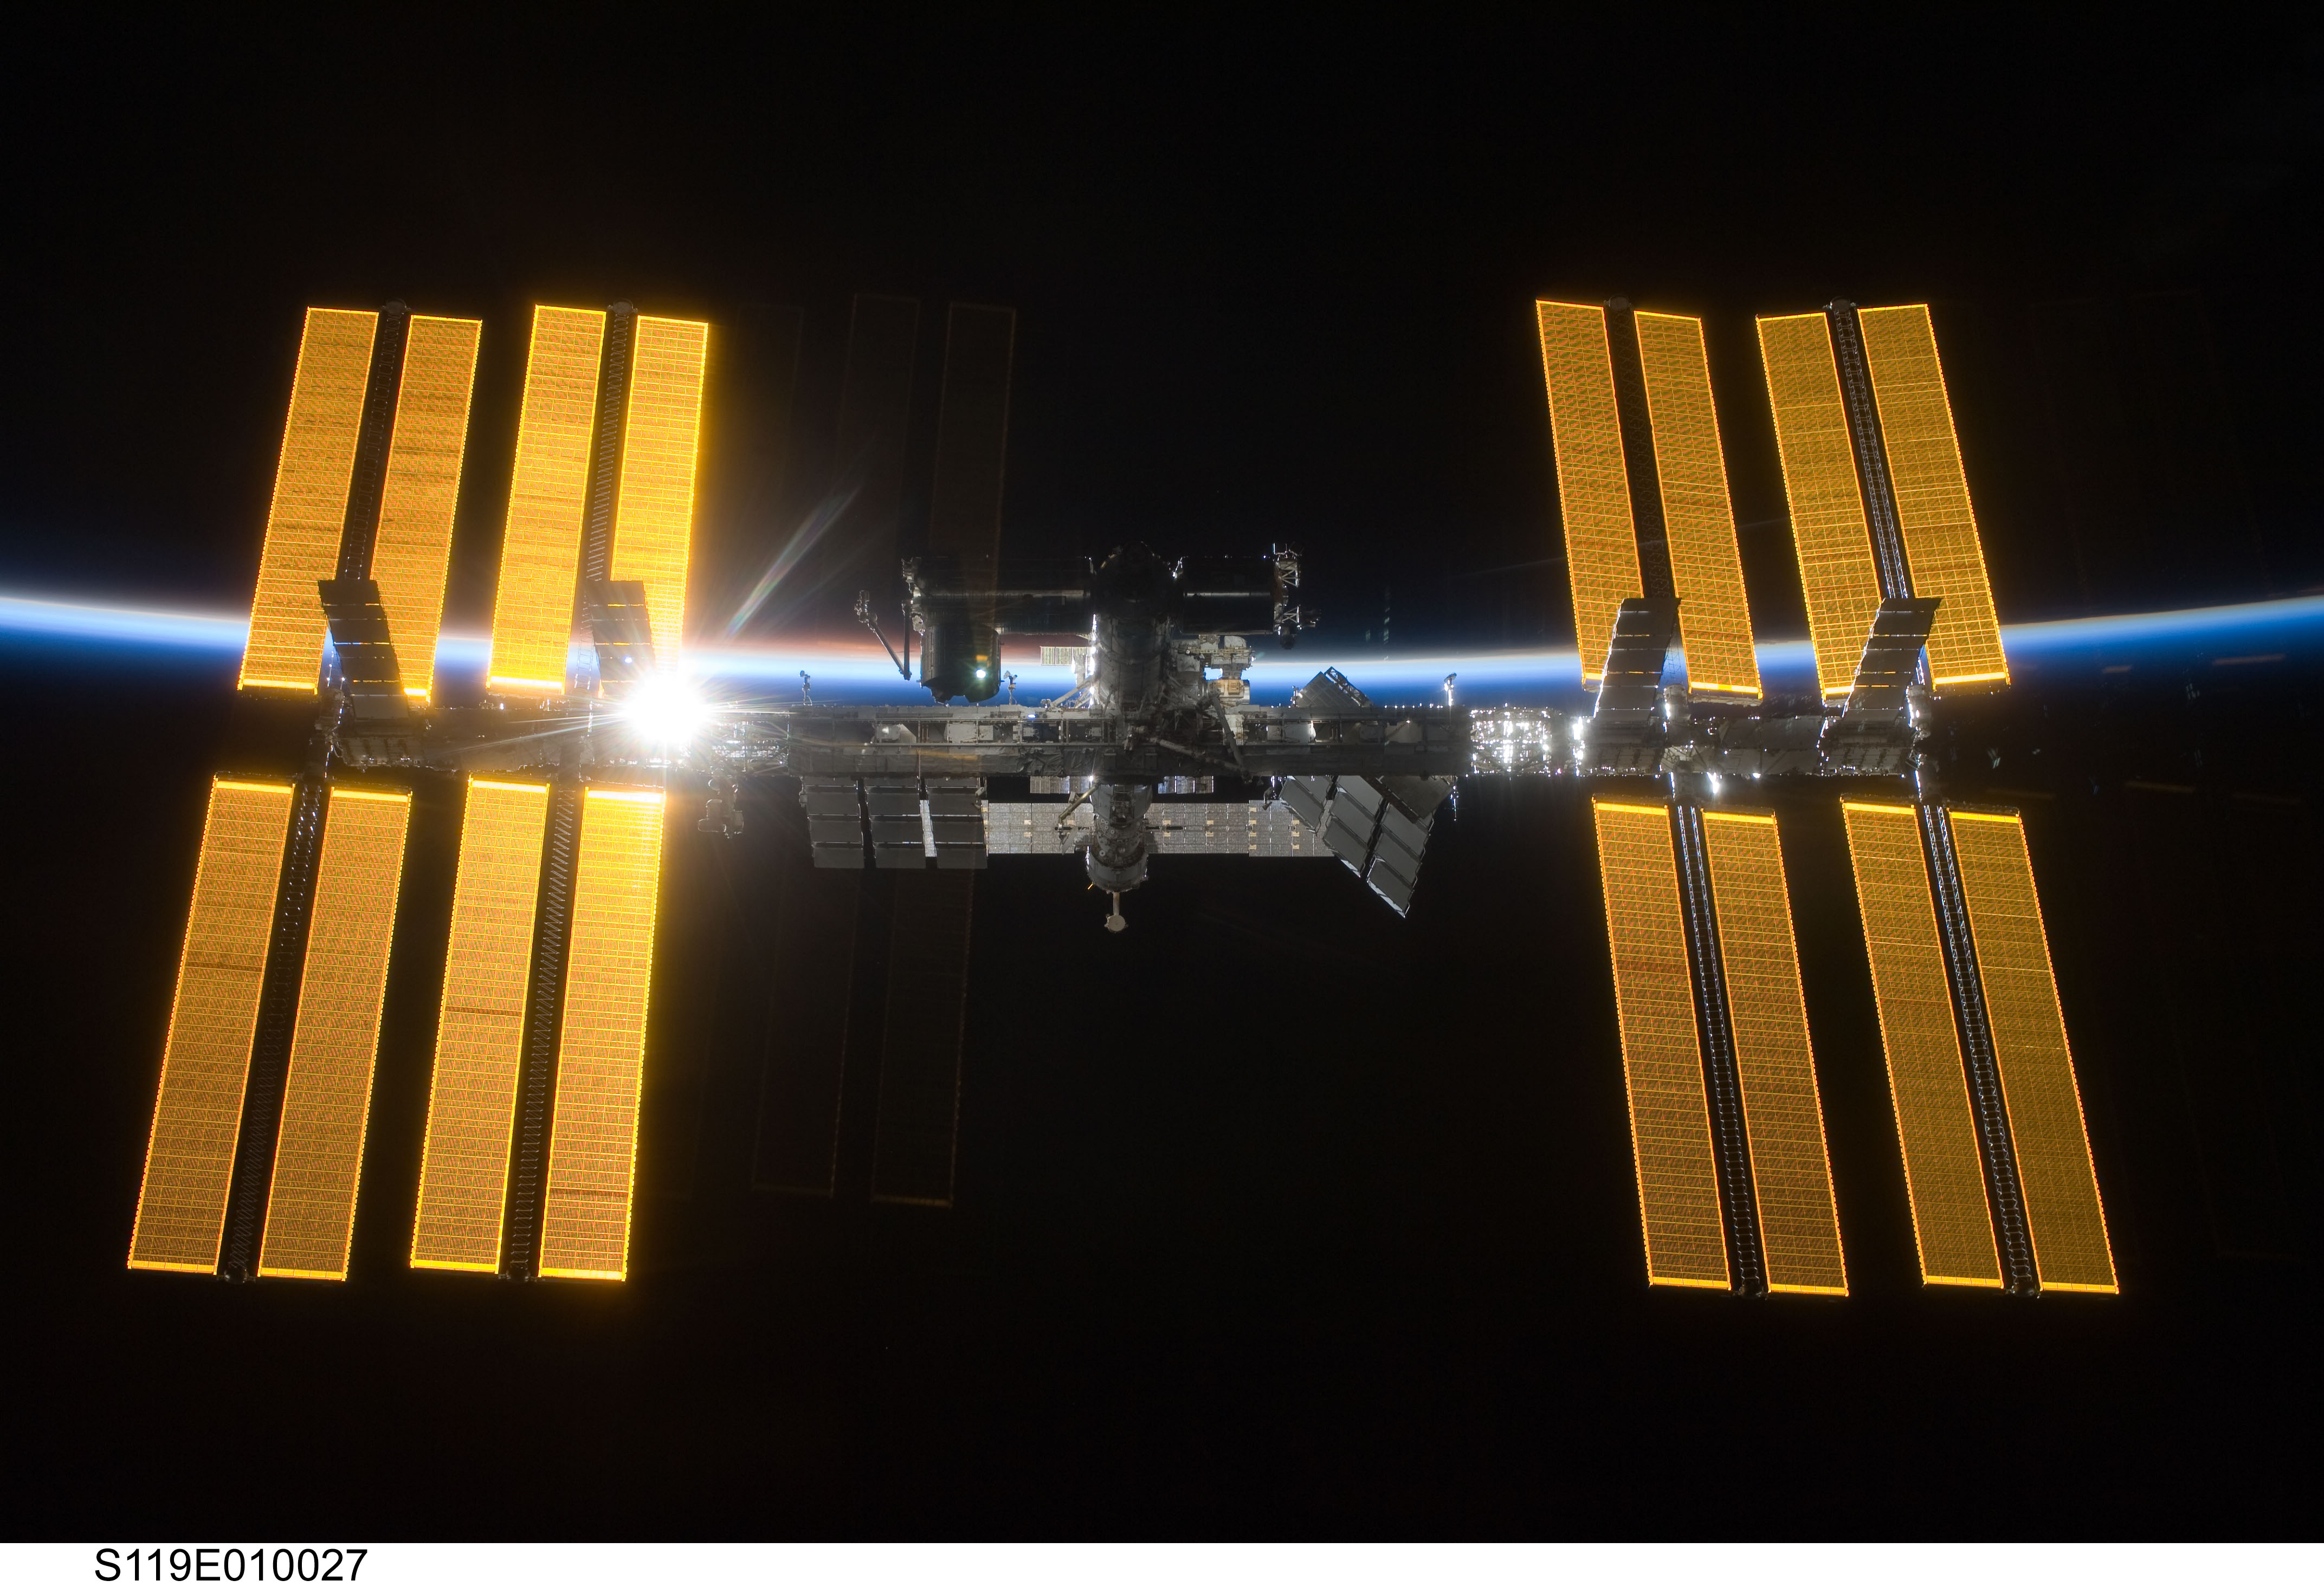 solar powered space station - photo #1